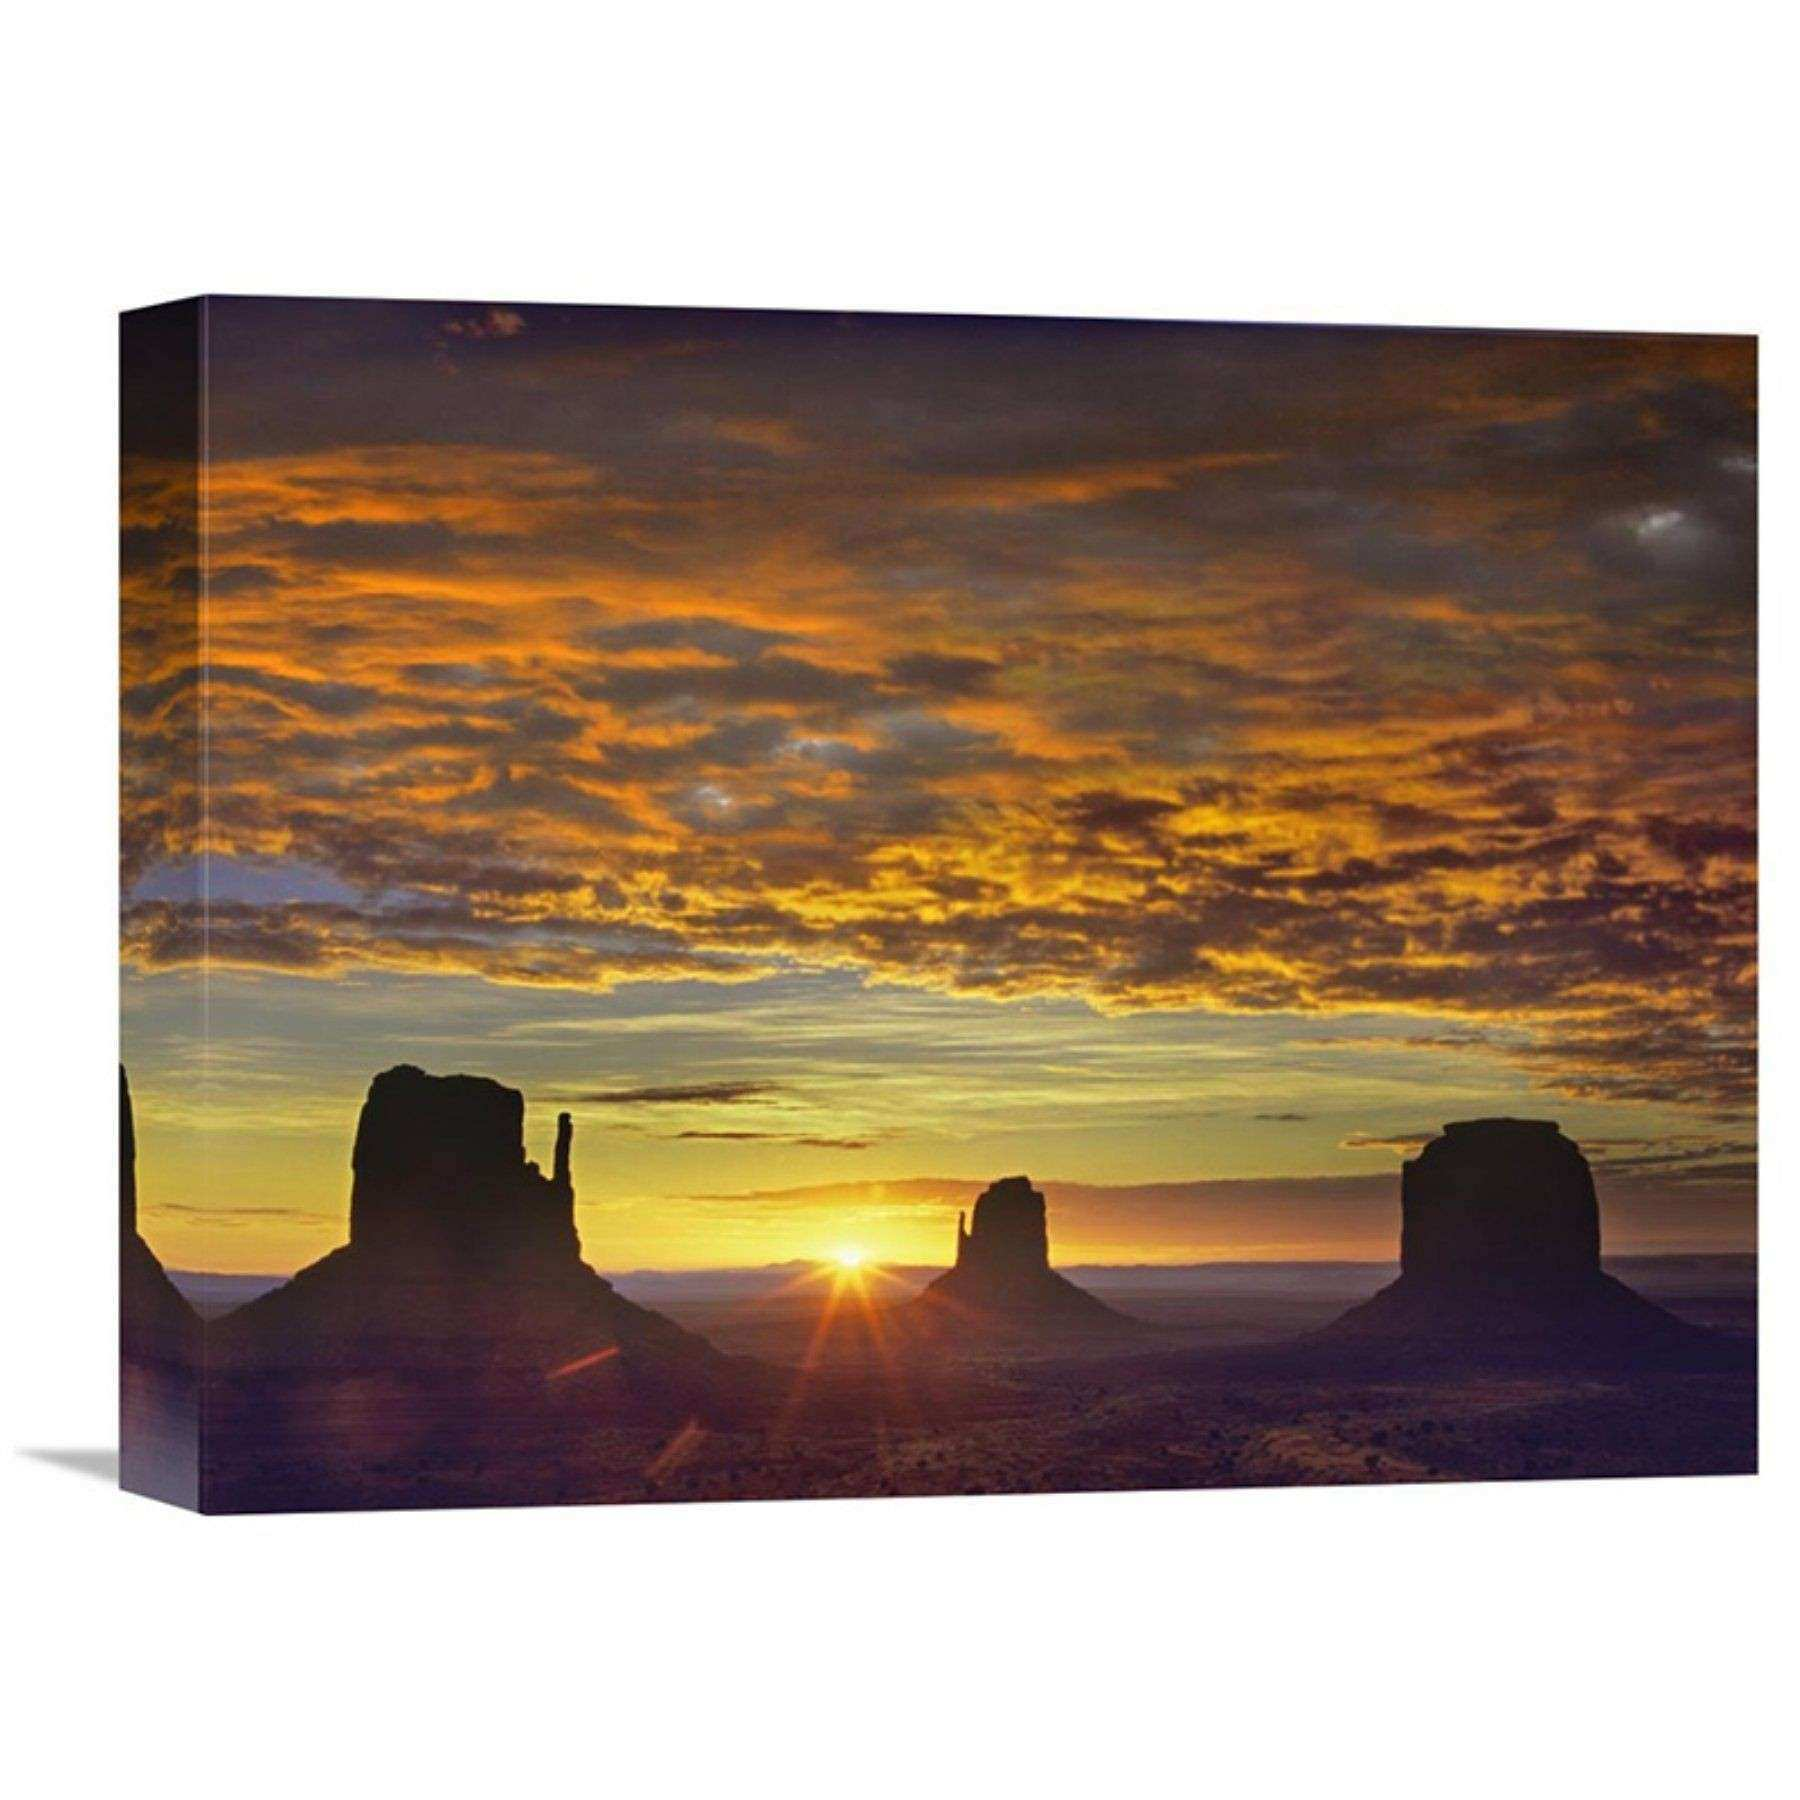 Arizona Wall Art Inspirational Global Gallery the Mittens and Merrick butte at Sunrise Monument